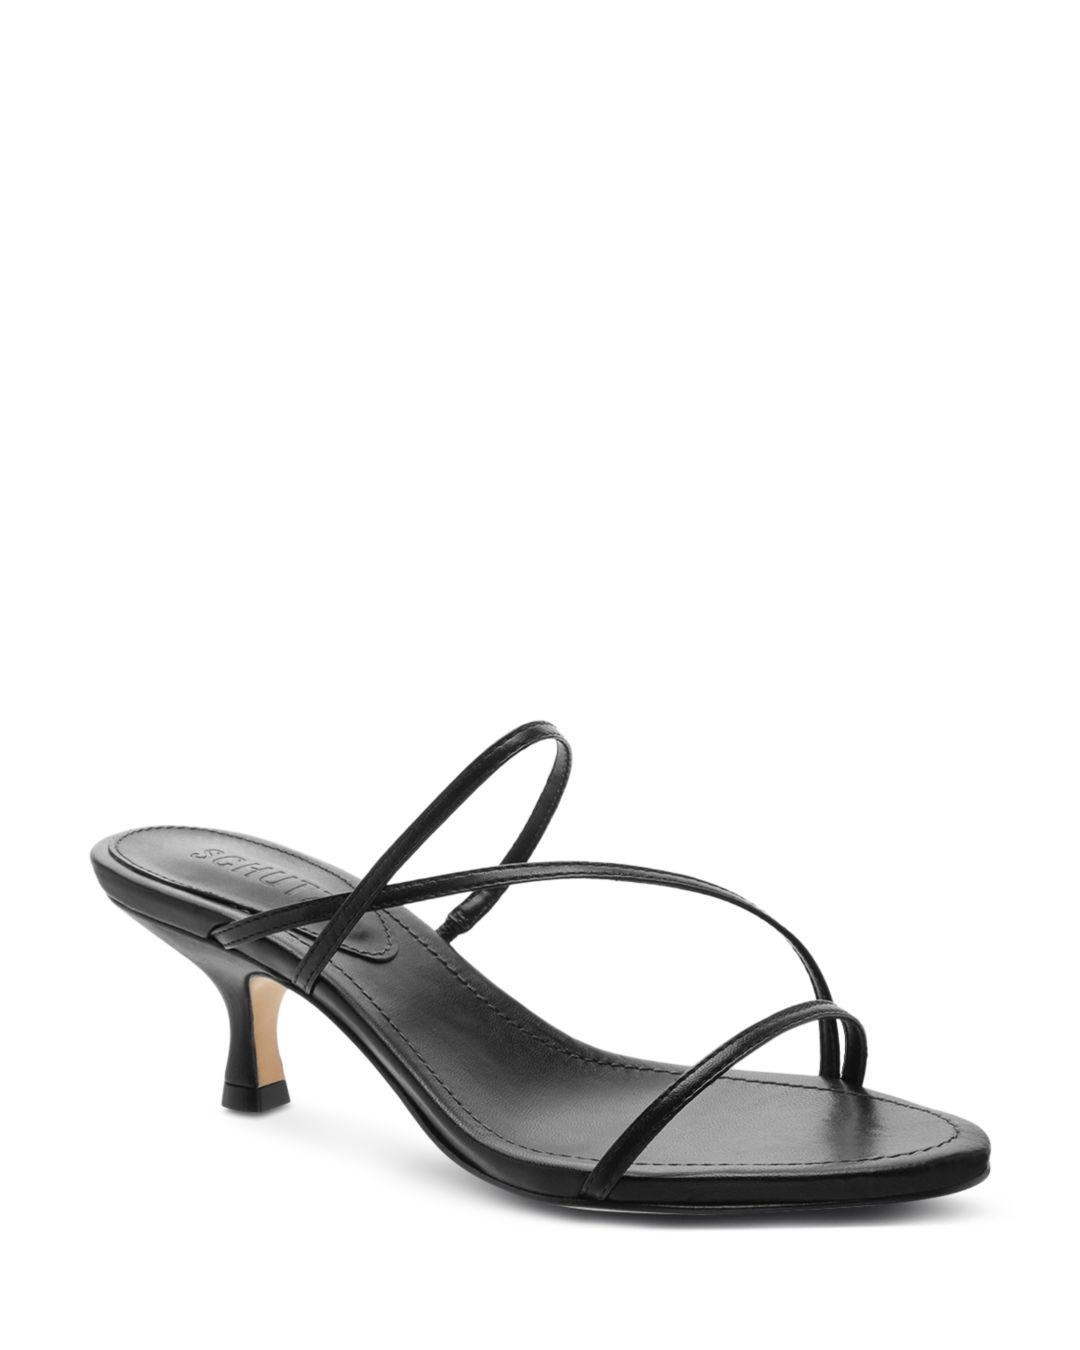 1ed8dbfe0d5 Schutz - Black Evenise Strappy Kitten-heel Leather Sandals - Lyst. View  fullscreen